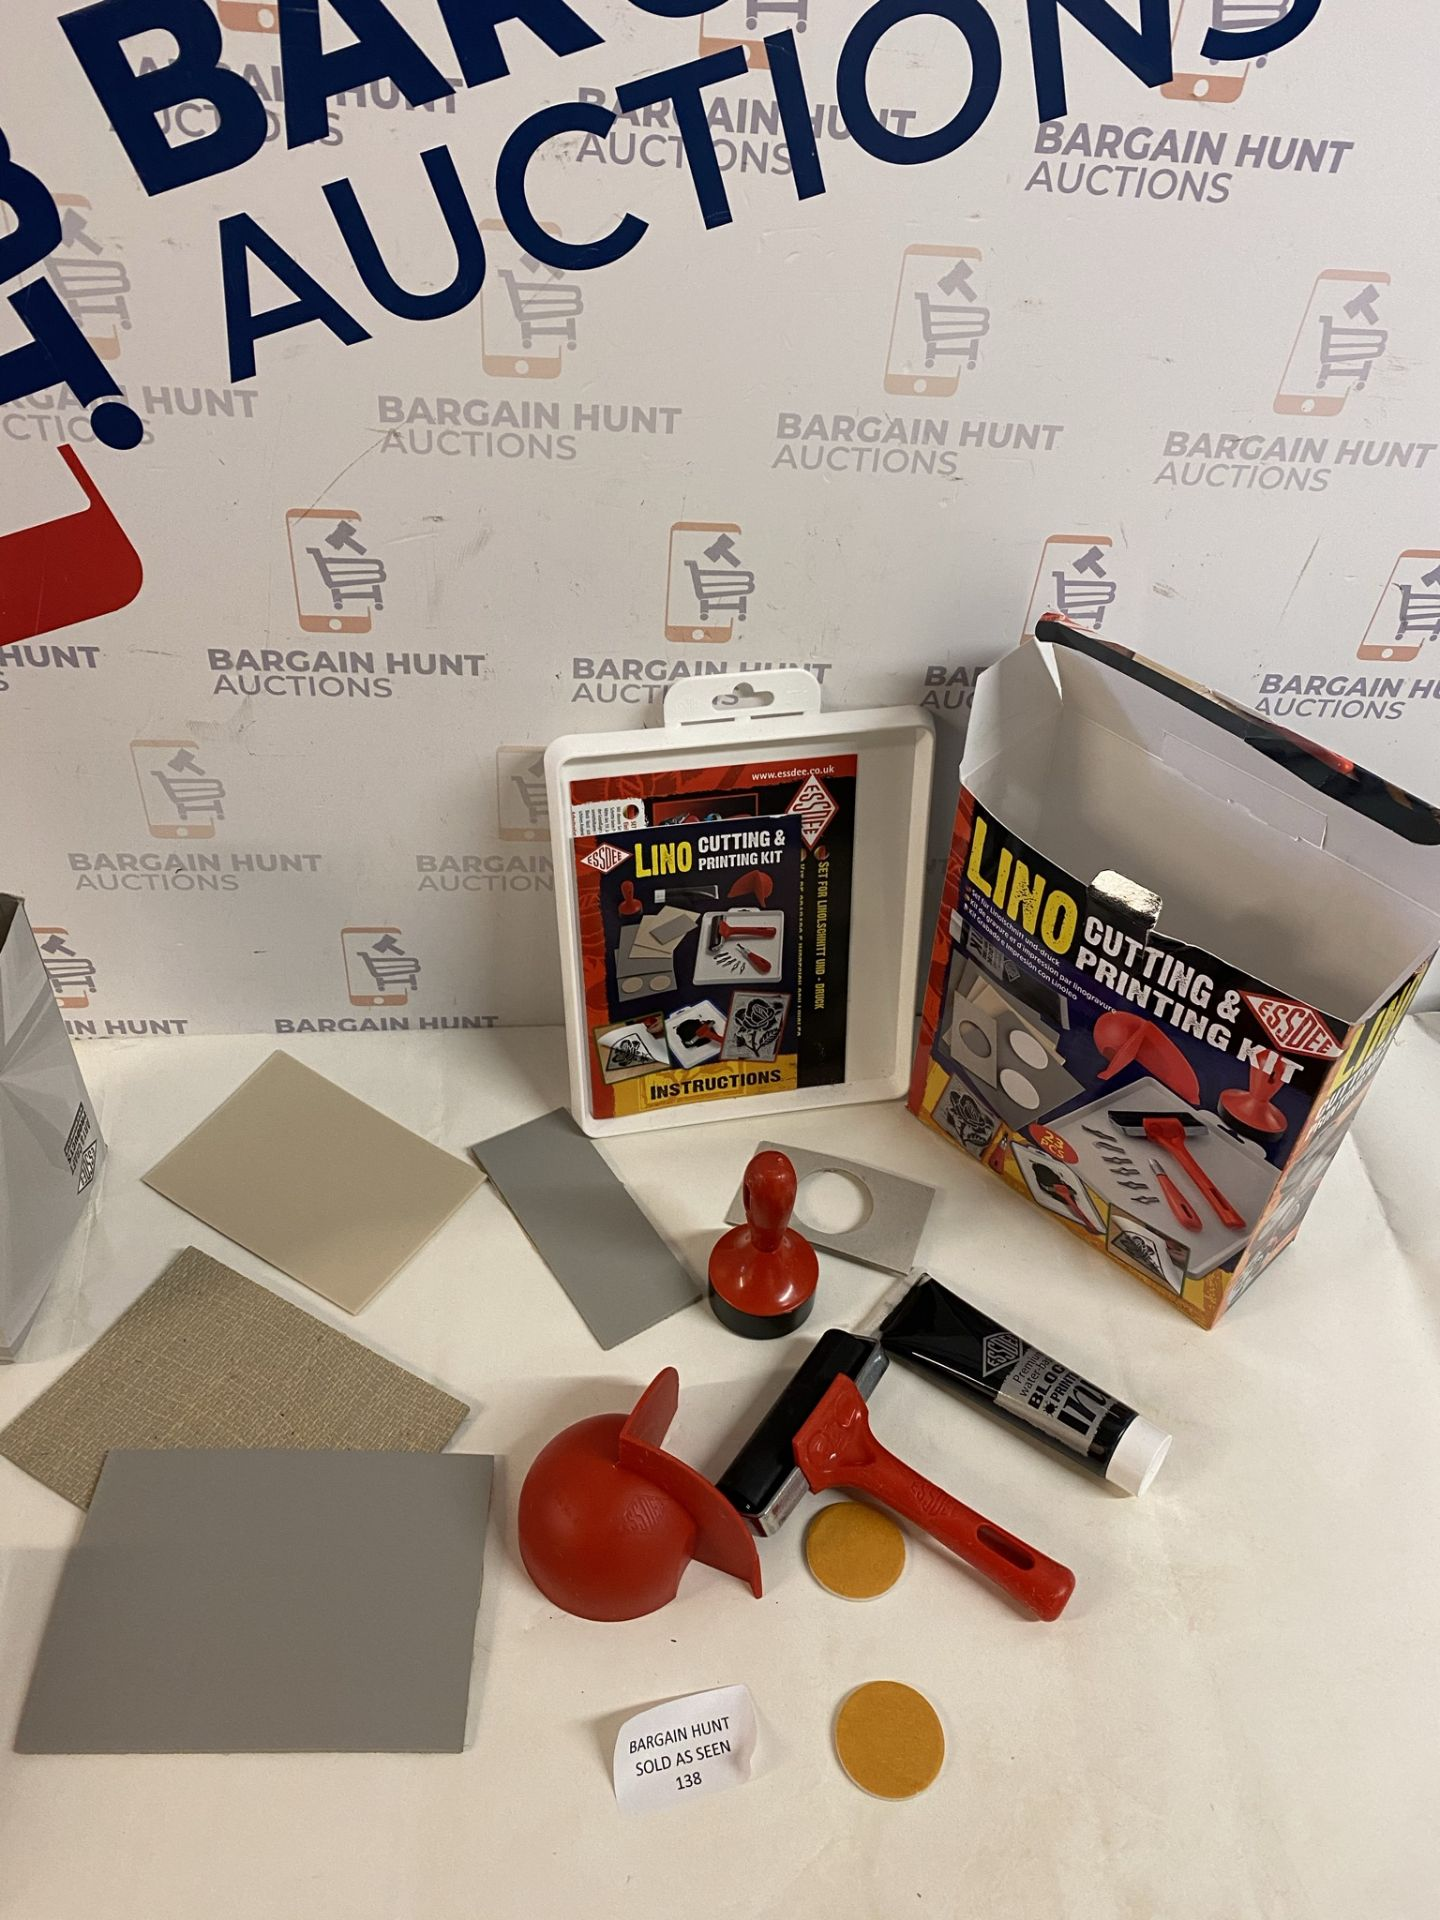 Lino Cutting & Printing Kit (for contents, see image) - Image 2 of 2